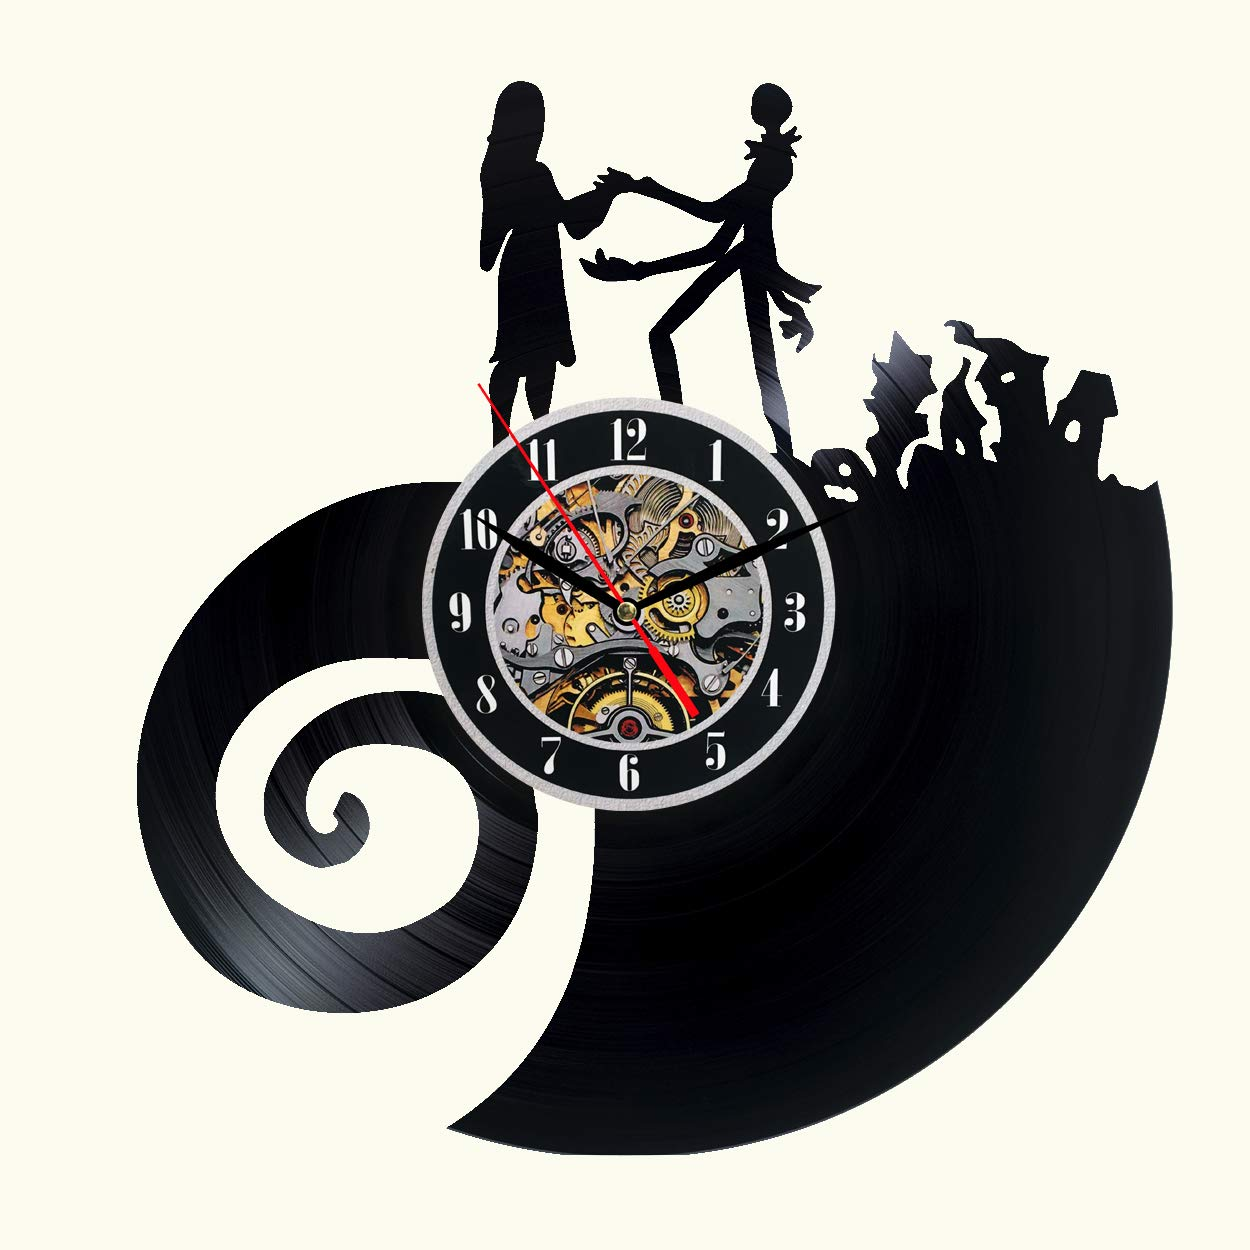 The Nightmare Before Christmas Vinyl Wall Clock 12 in Black Decor ...